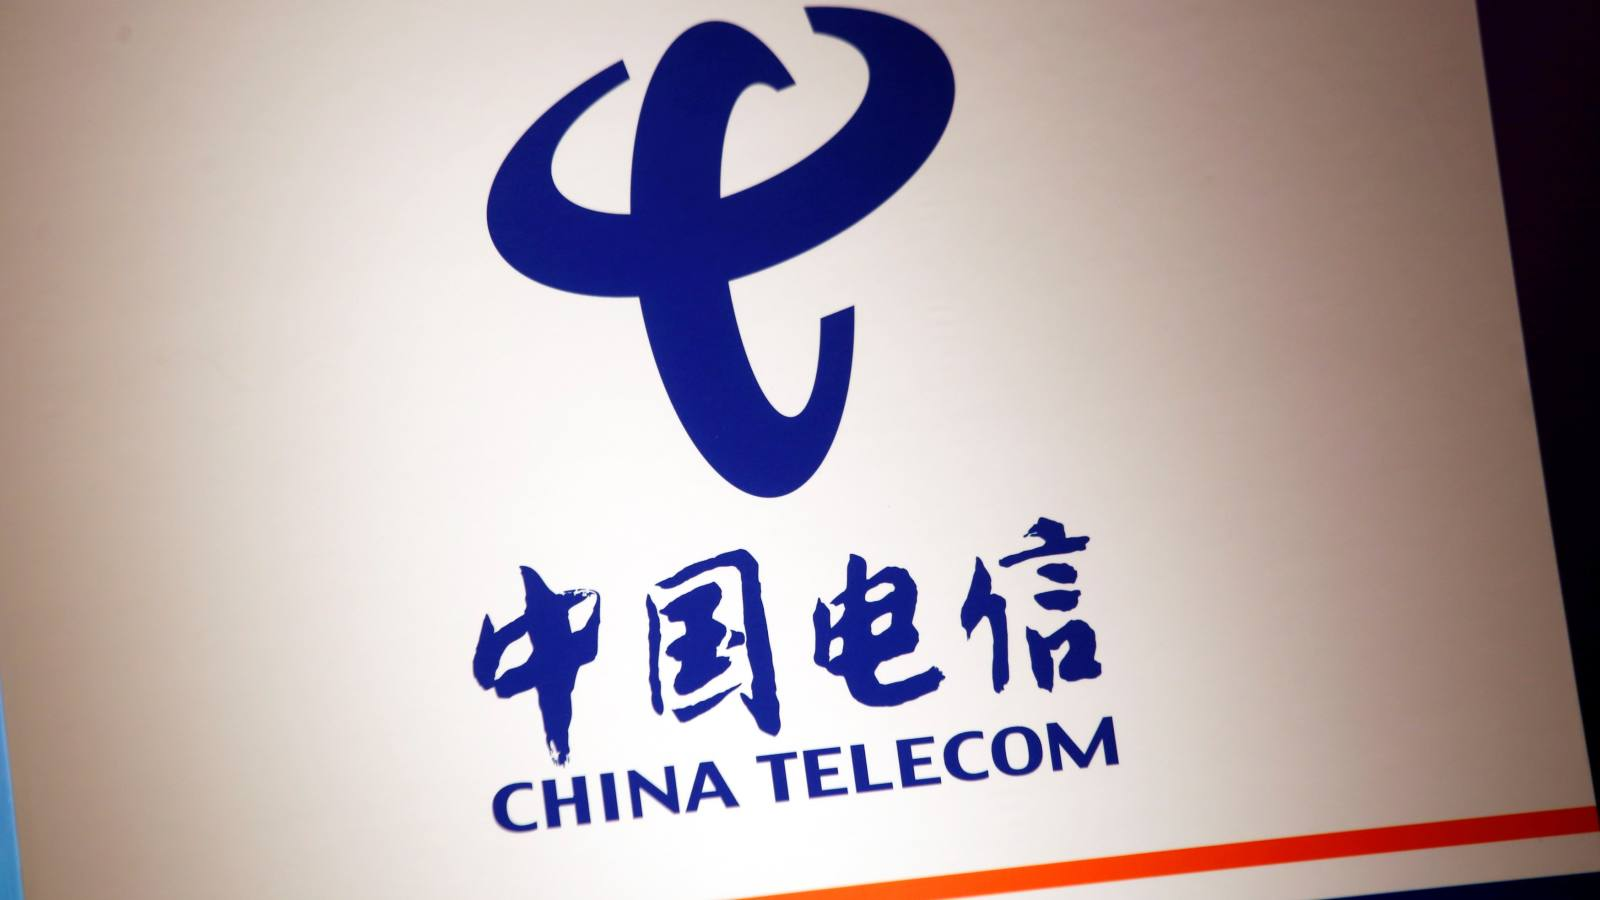 US revokes license of Chinese state-owned telecom China Telecom